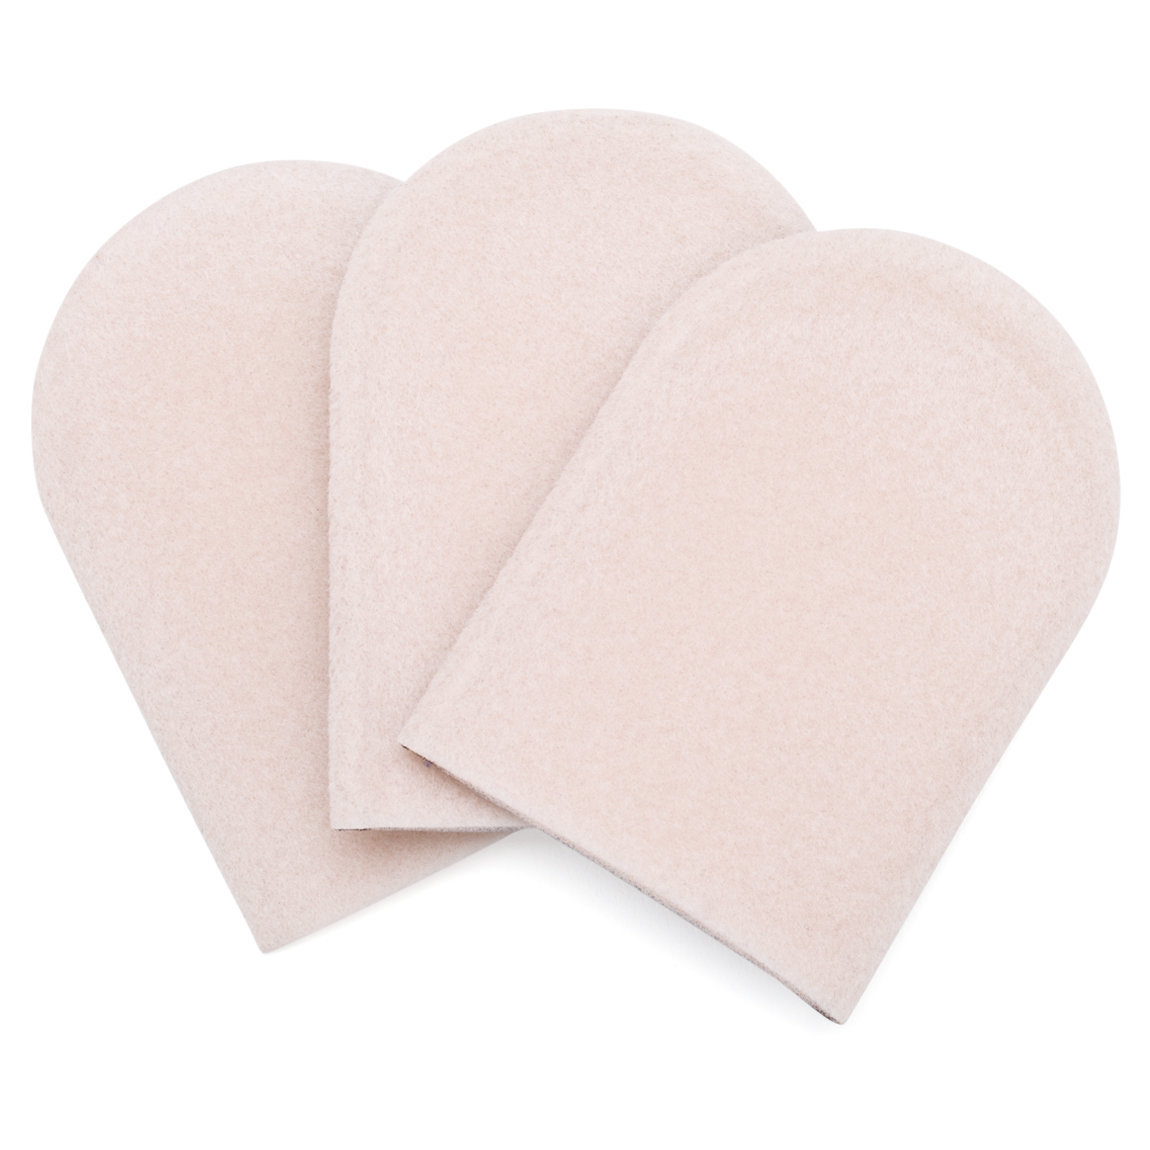 St. Tropez Applicator Mitt For Face alternative view 1 - product swatch.